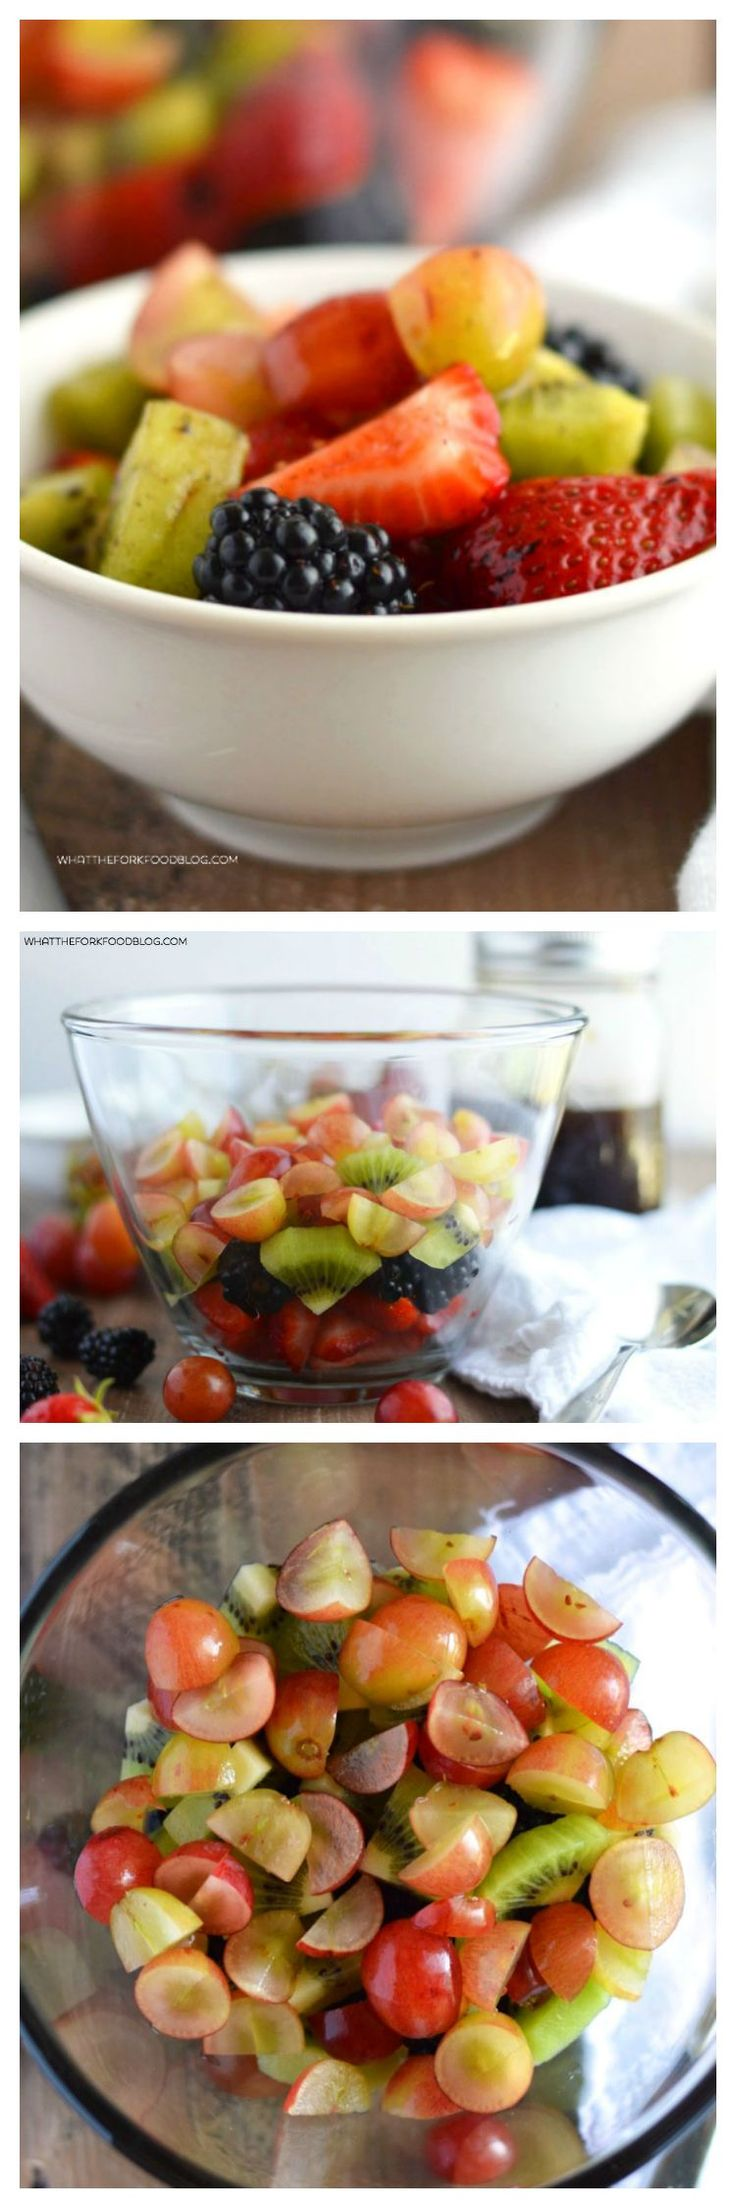 Easy Fruit Salad for Two with a coconut sugar simple syrup from What The Fork Food Blog (gluten free, dairy free, vegan) | @WhatTheForkBlog | whattheforkfoodblog.com